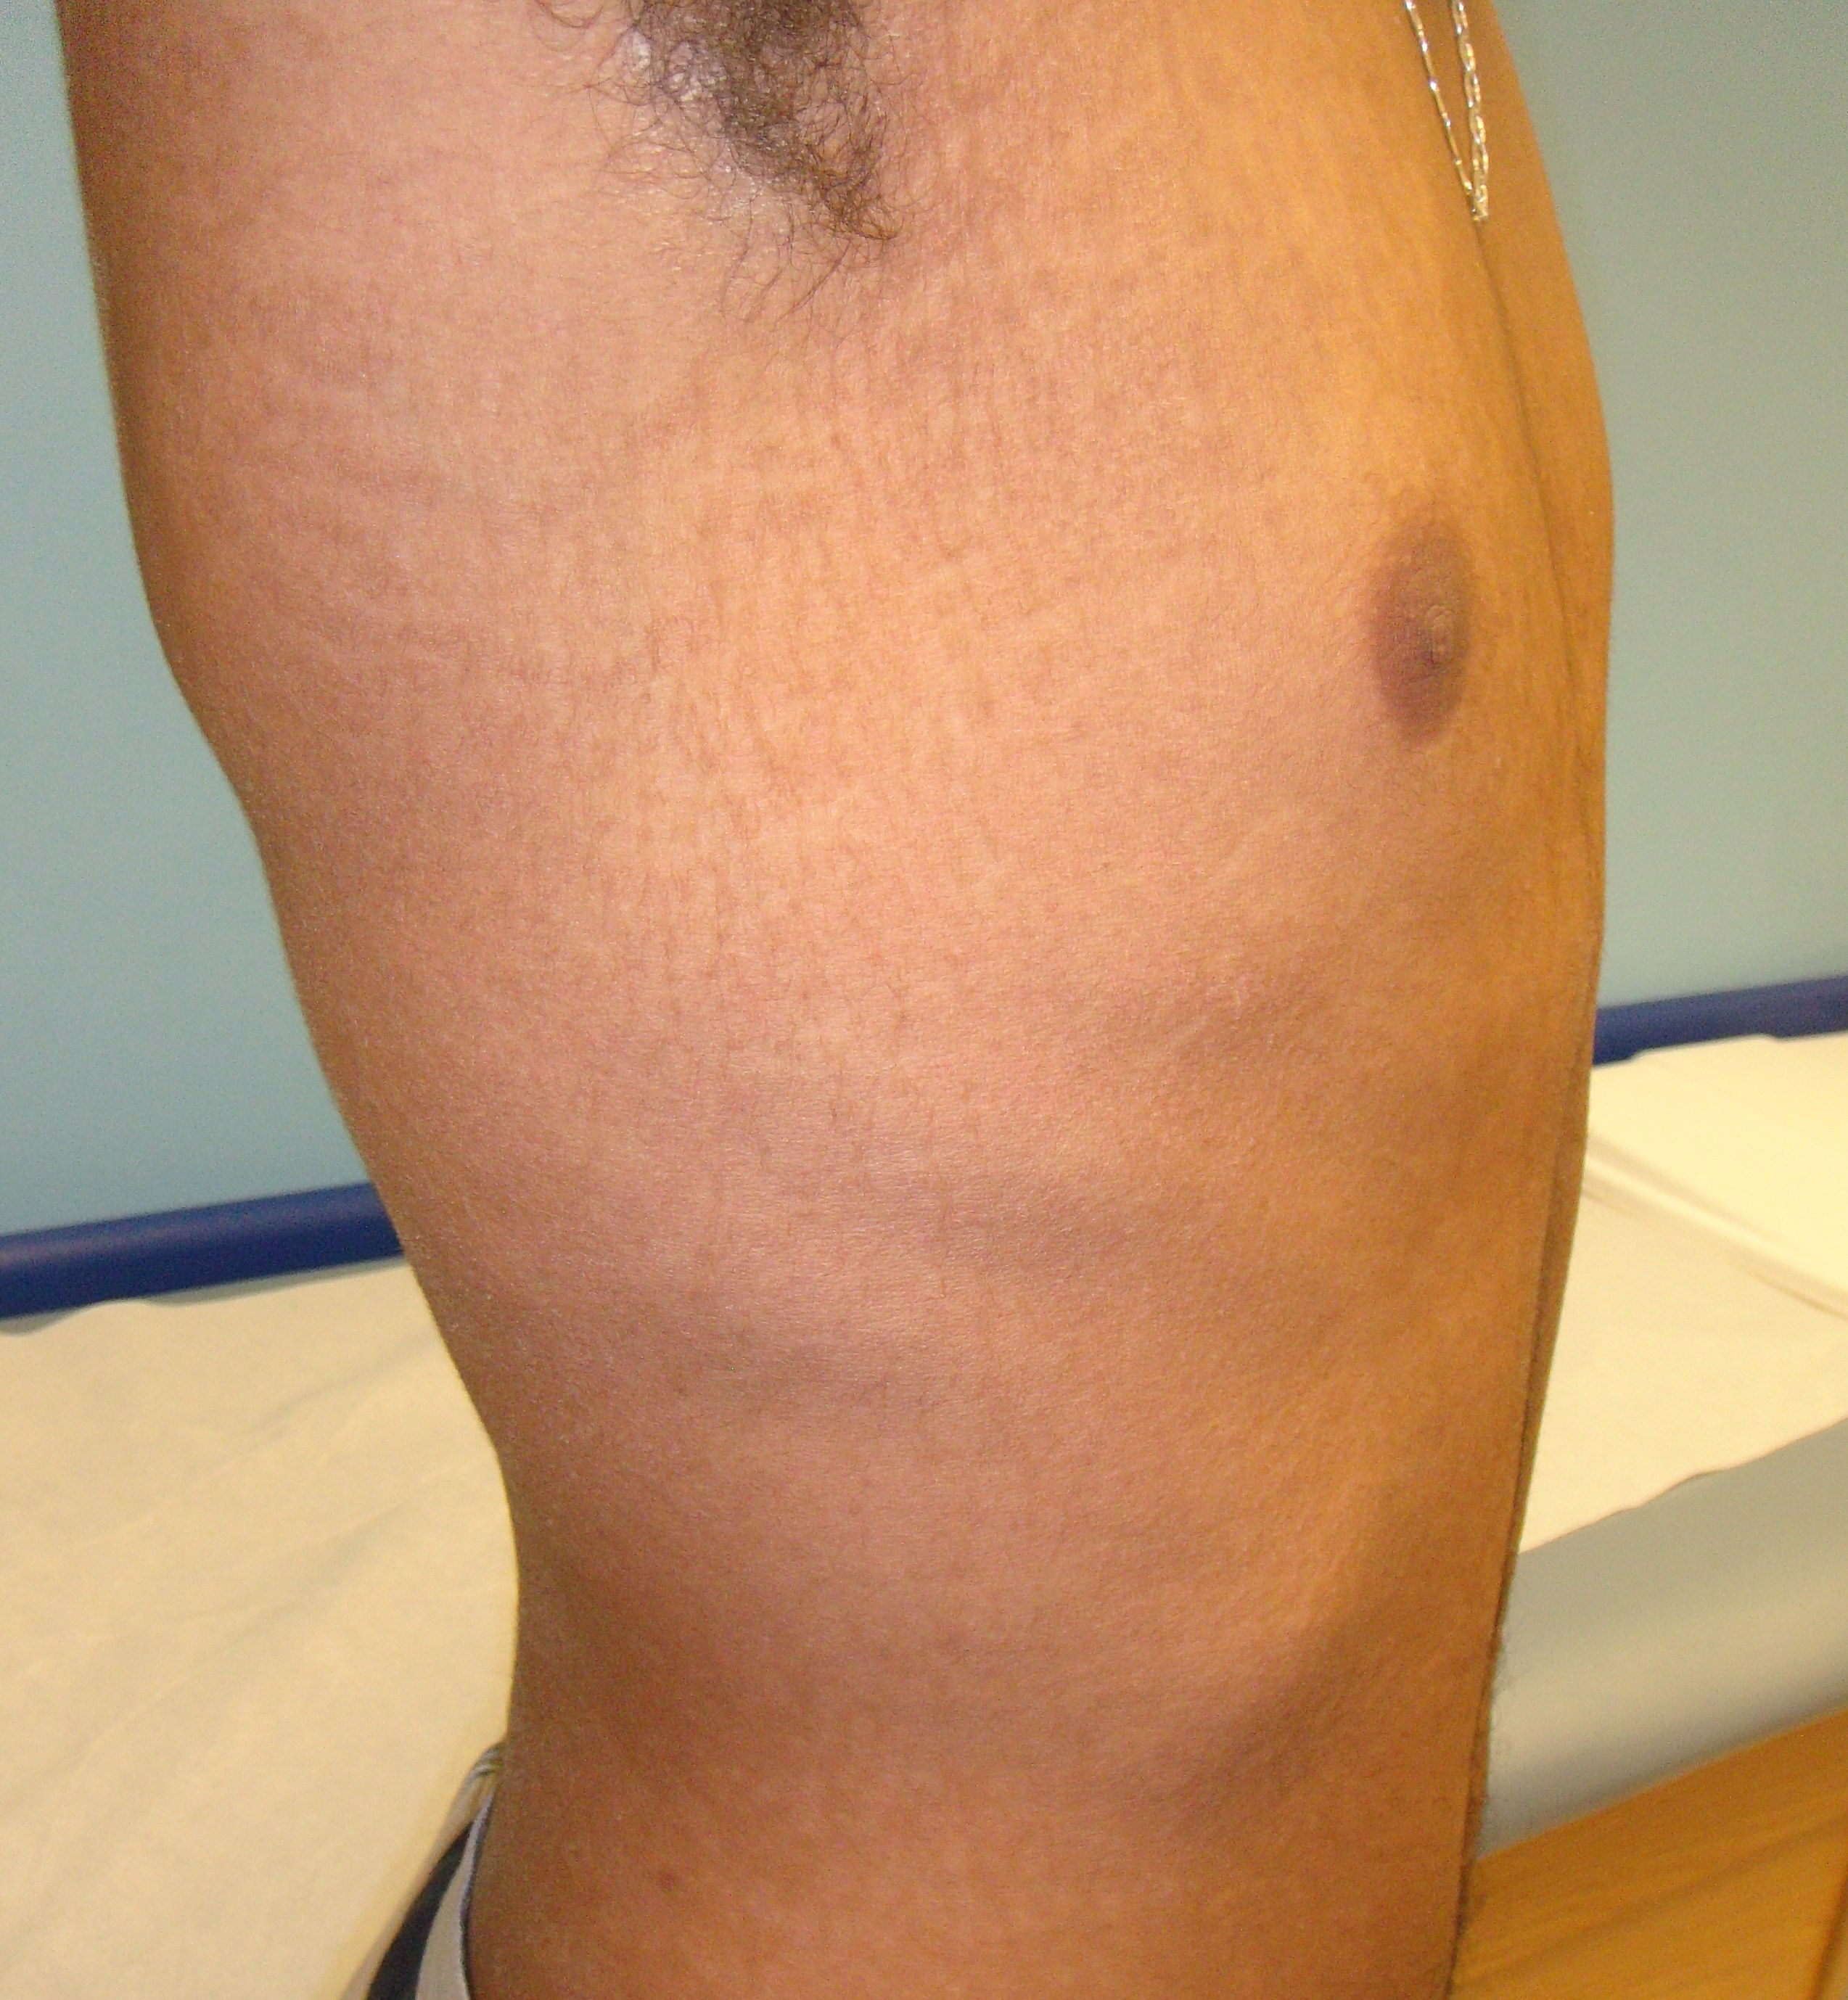 Papillomatosis skin causes, Cutaneous manifestations in pregnancy: Pre-existing skin diseases